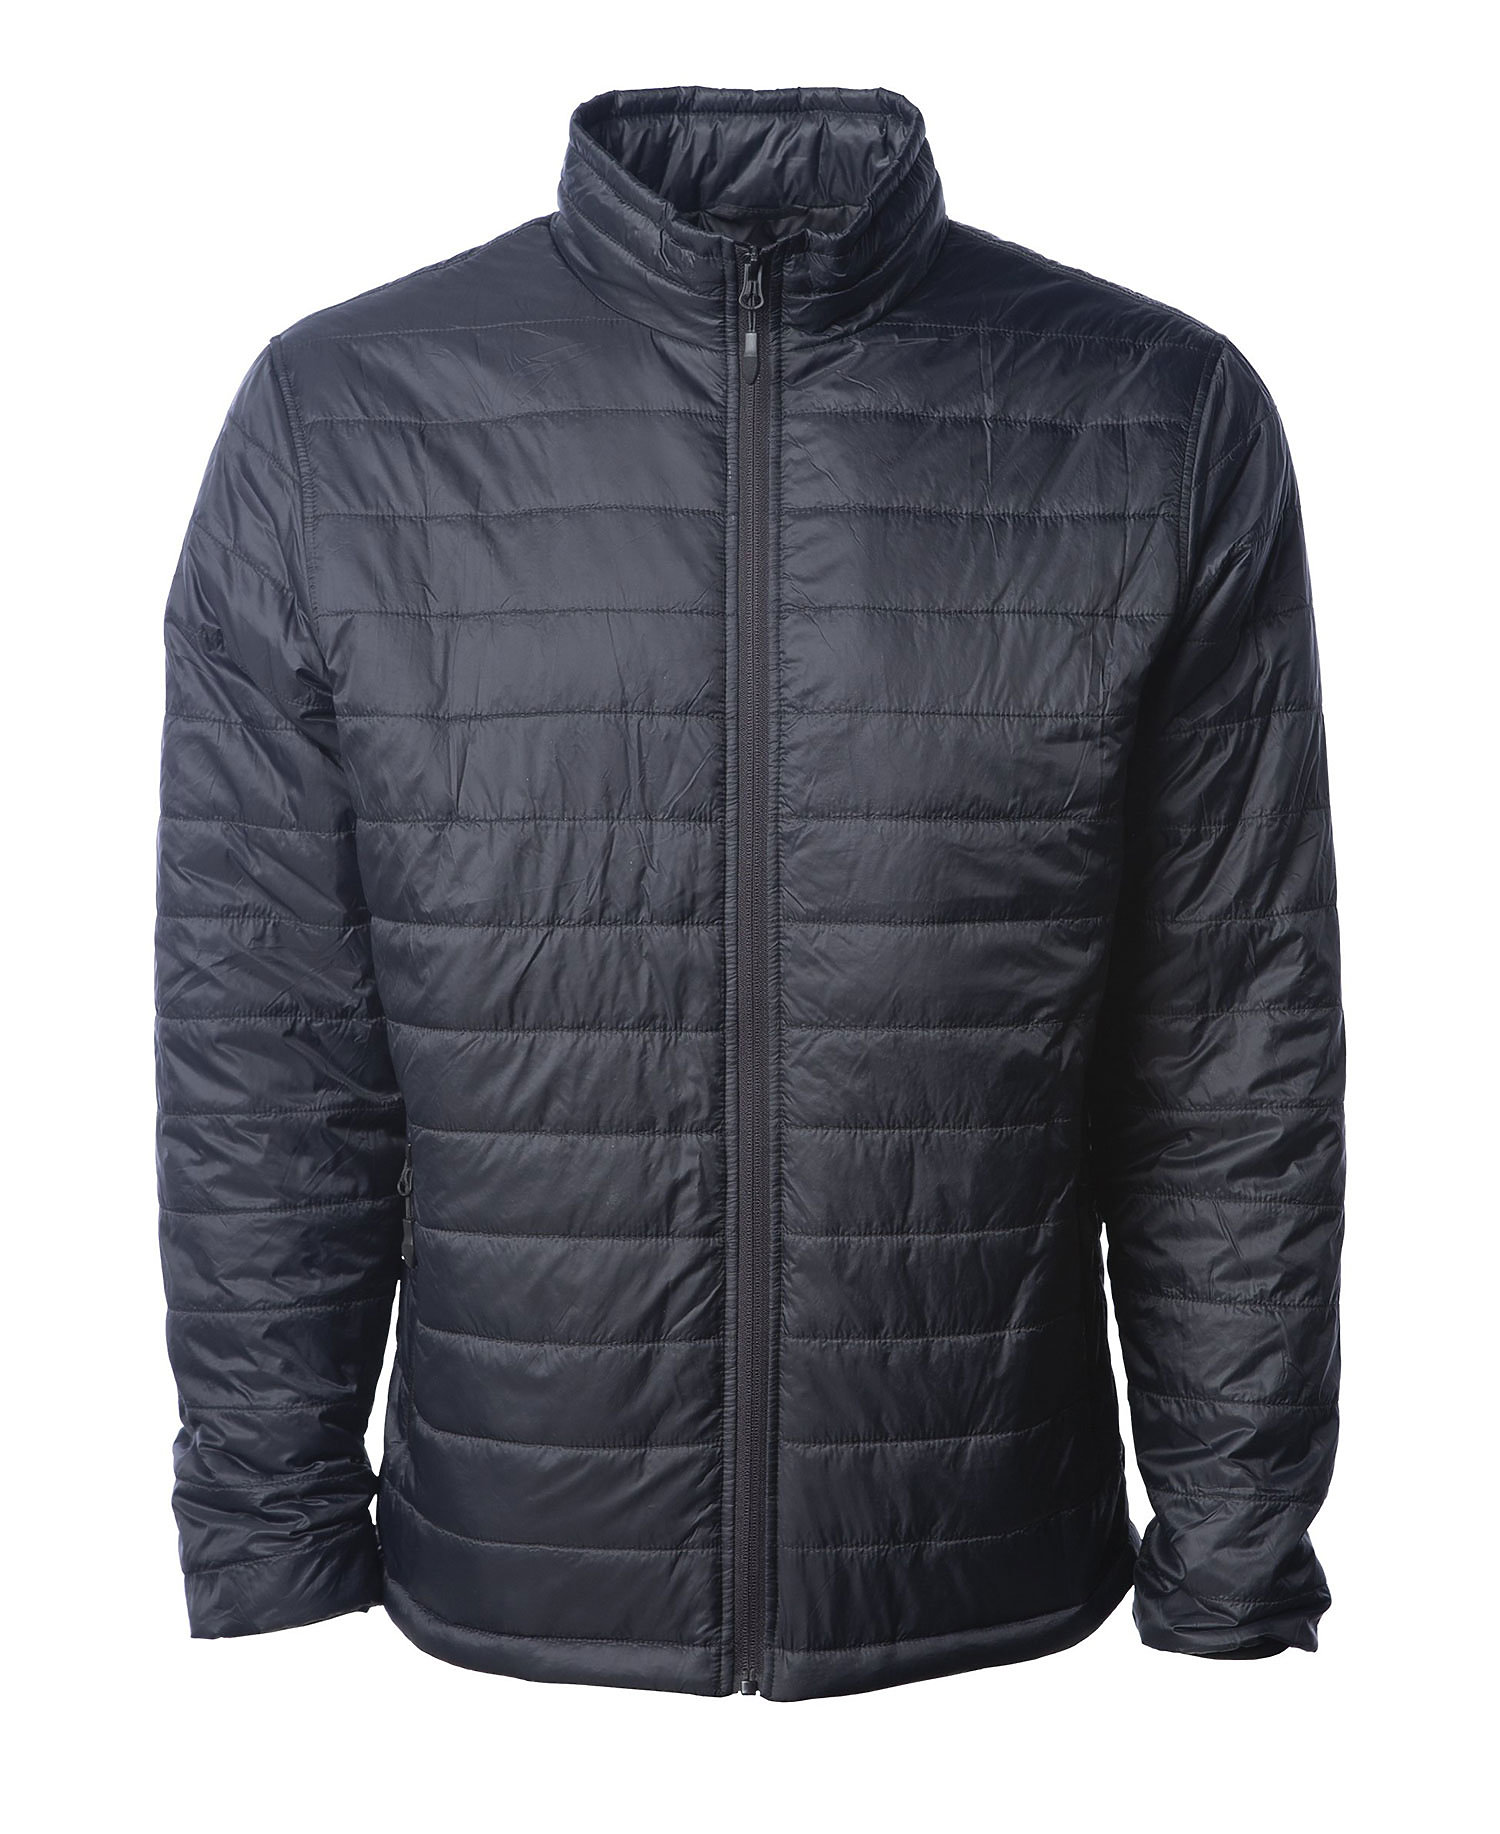 Independent Trading Co. EXP100PFZ - Men's Puffer Jacket